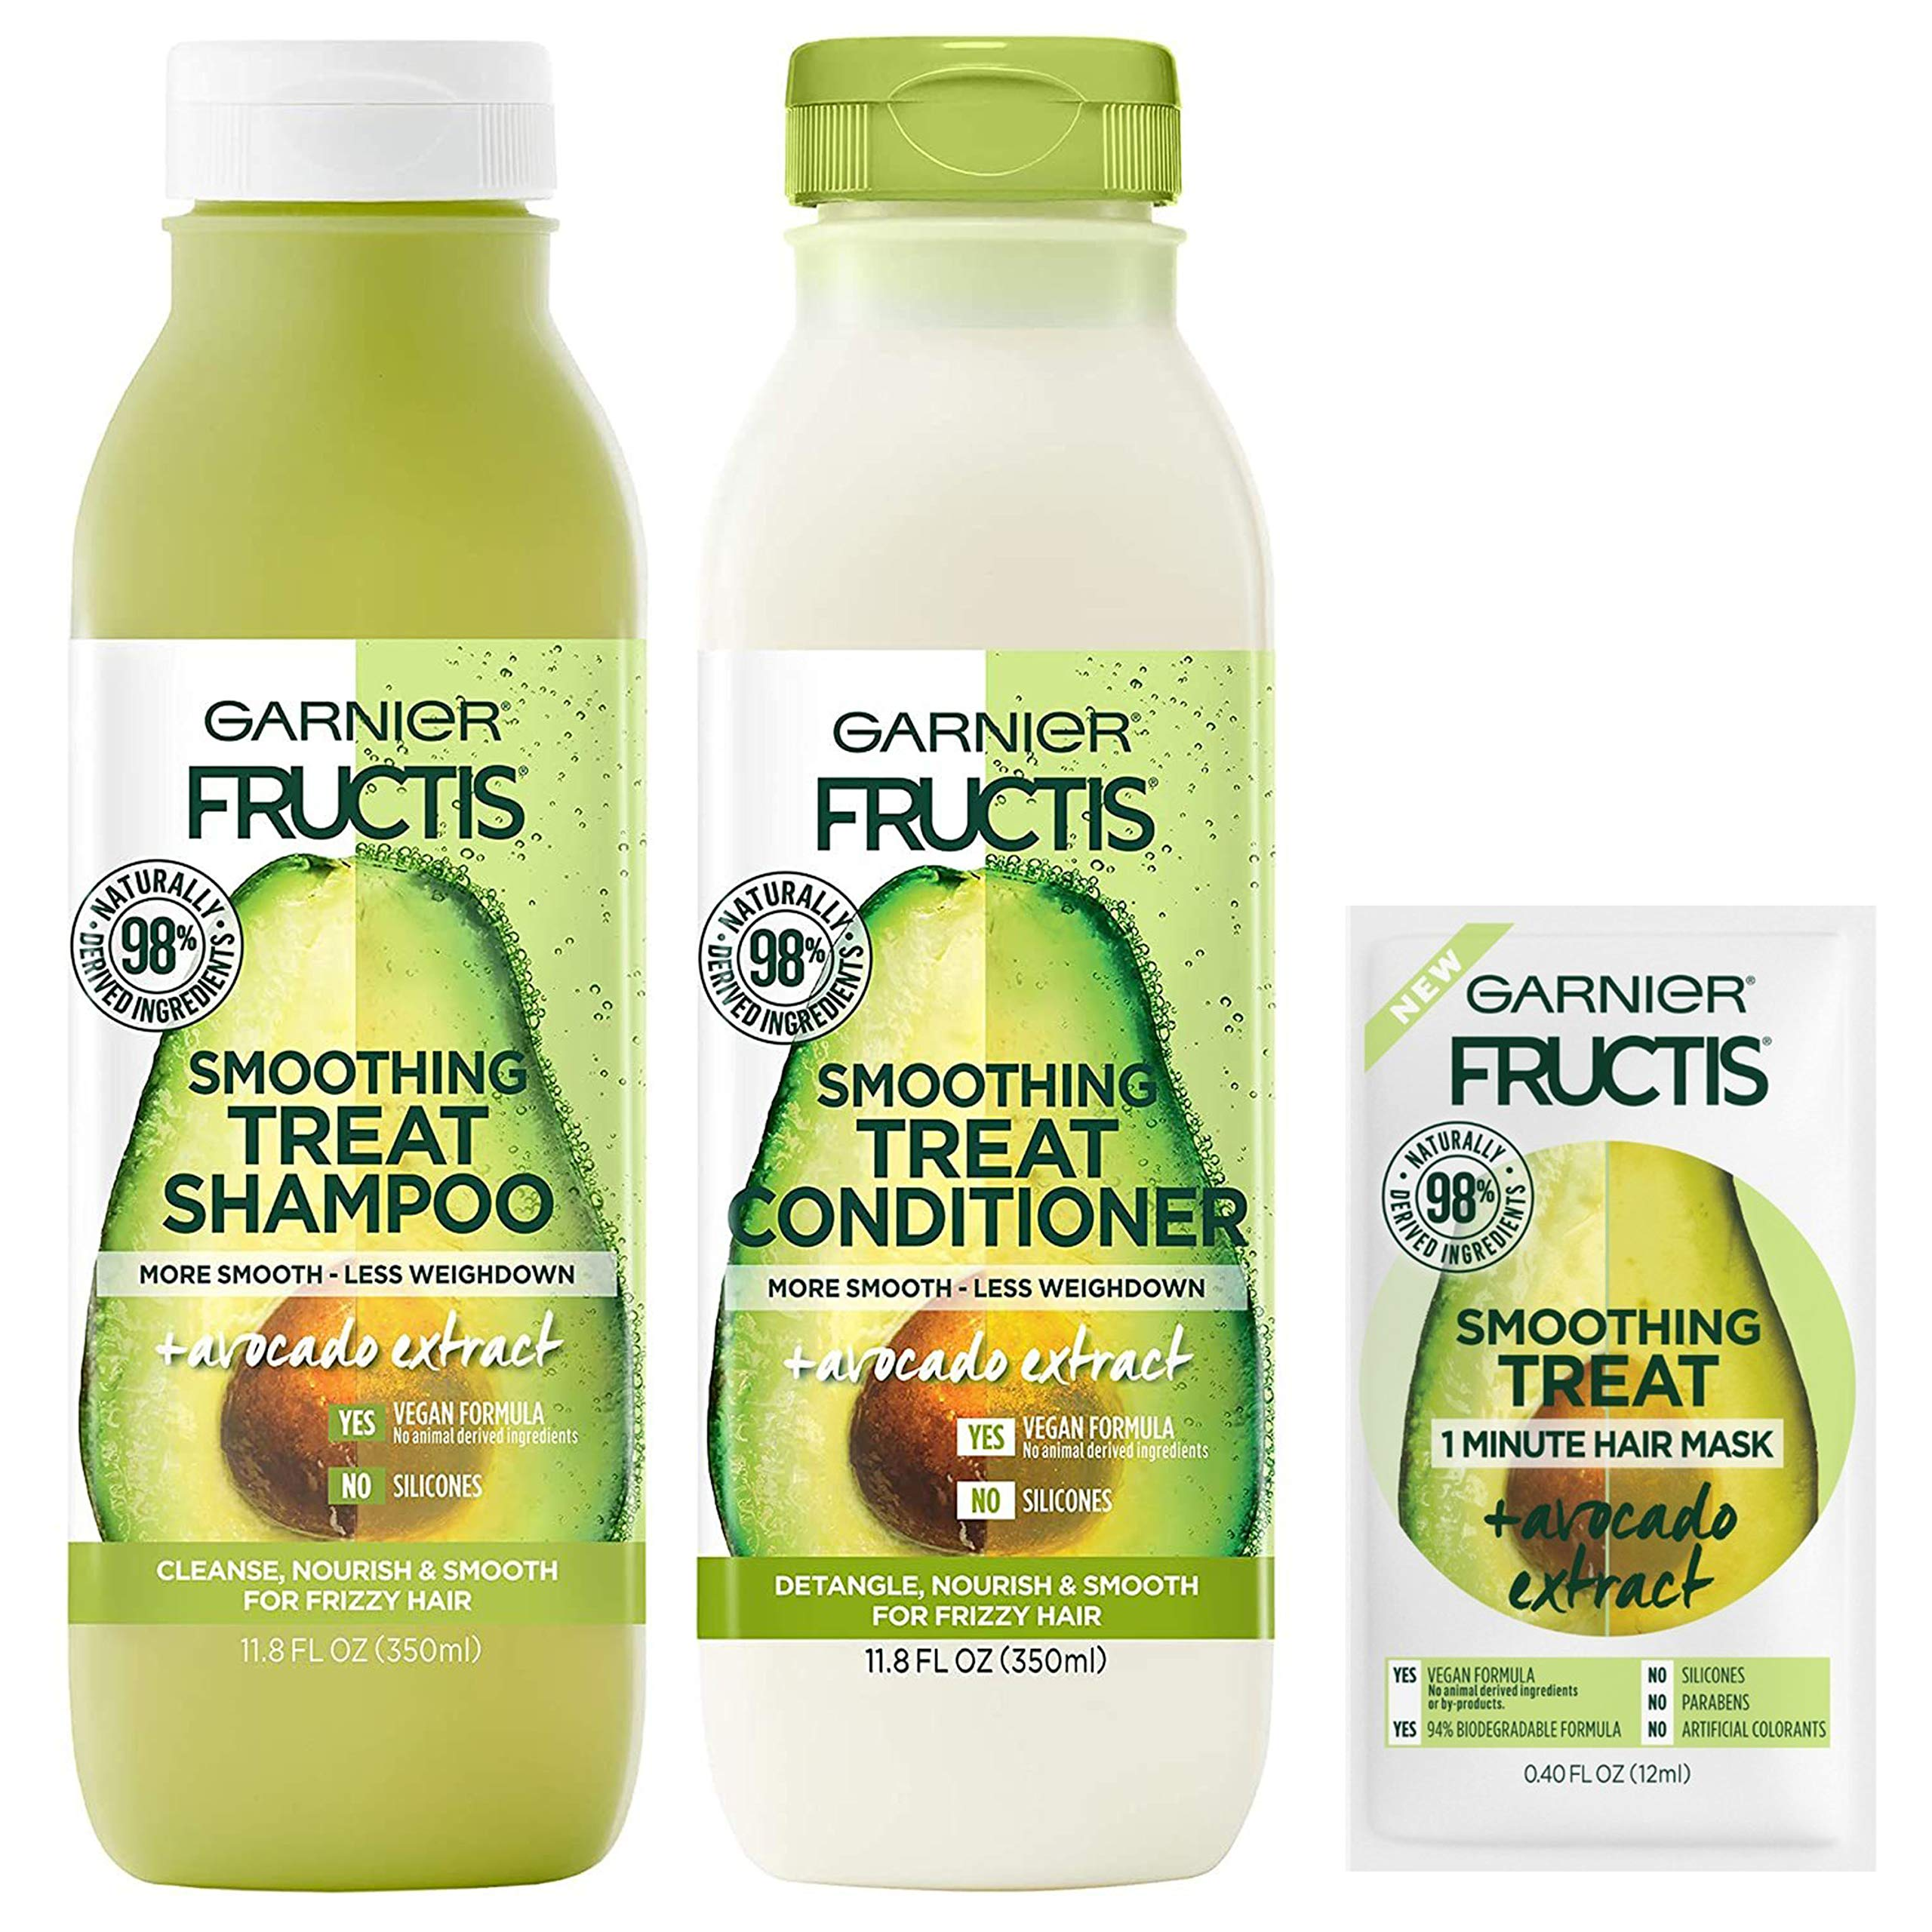 Garnier Haircare Fructis Smoothing Treat Shampoo and Conditioner, 98 Percent Naturally Derived Ingredients, Avocado, Frizzy Hair, W/Mask Sample, 1 Kit (Packaging May Vary)